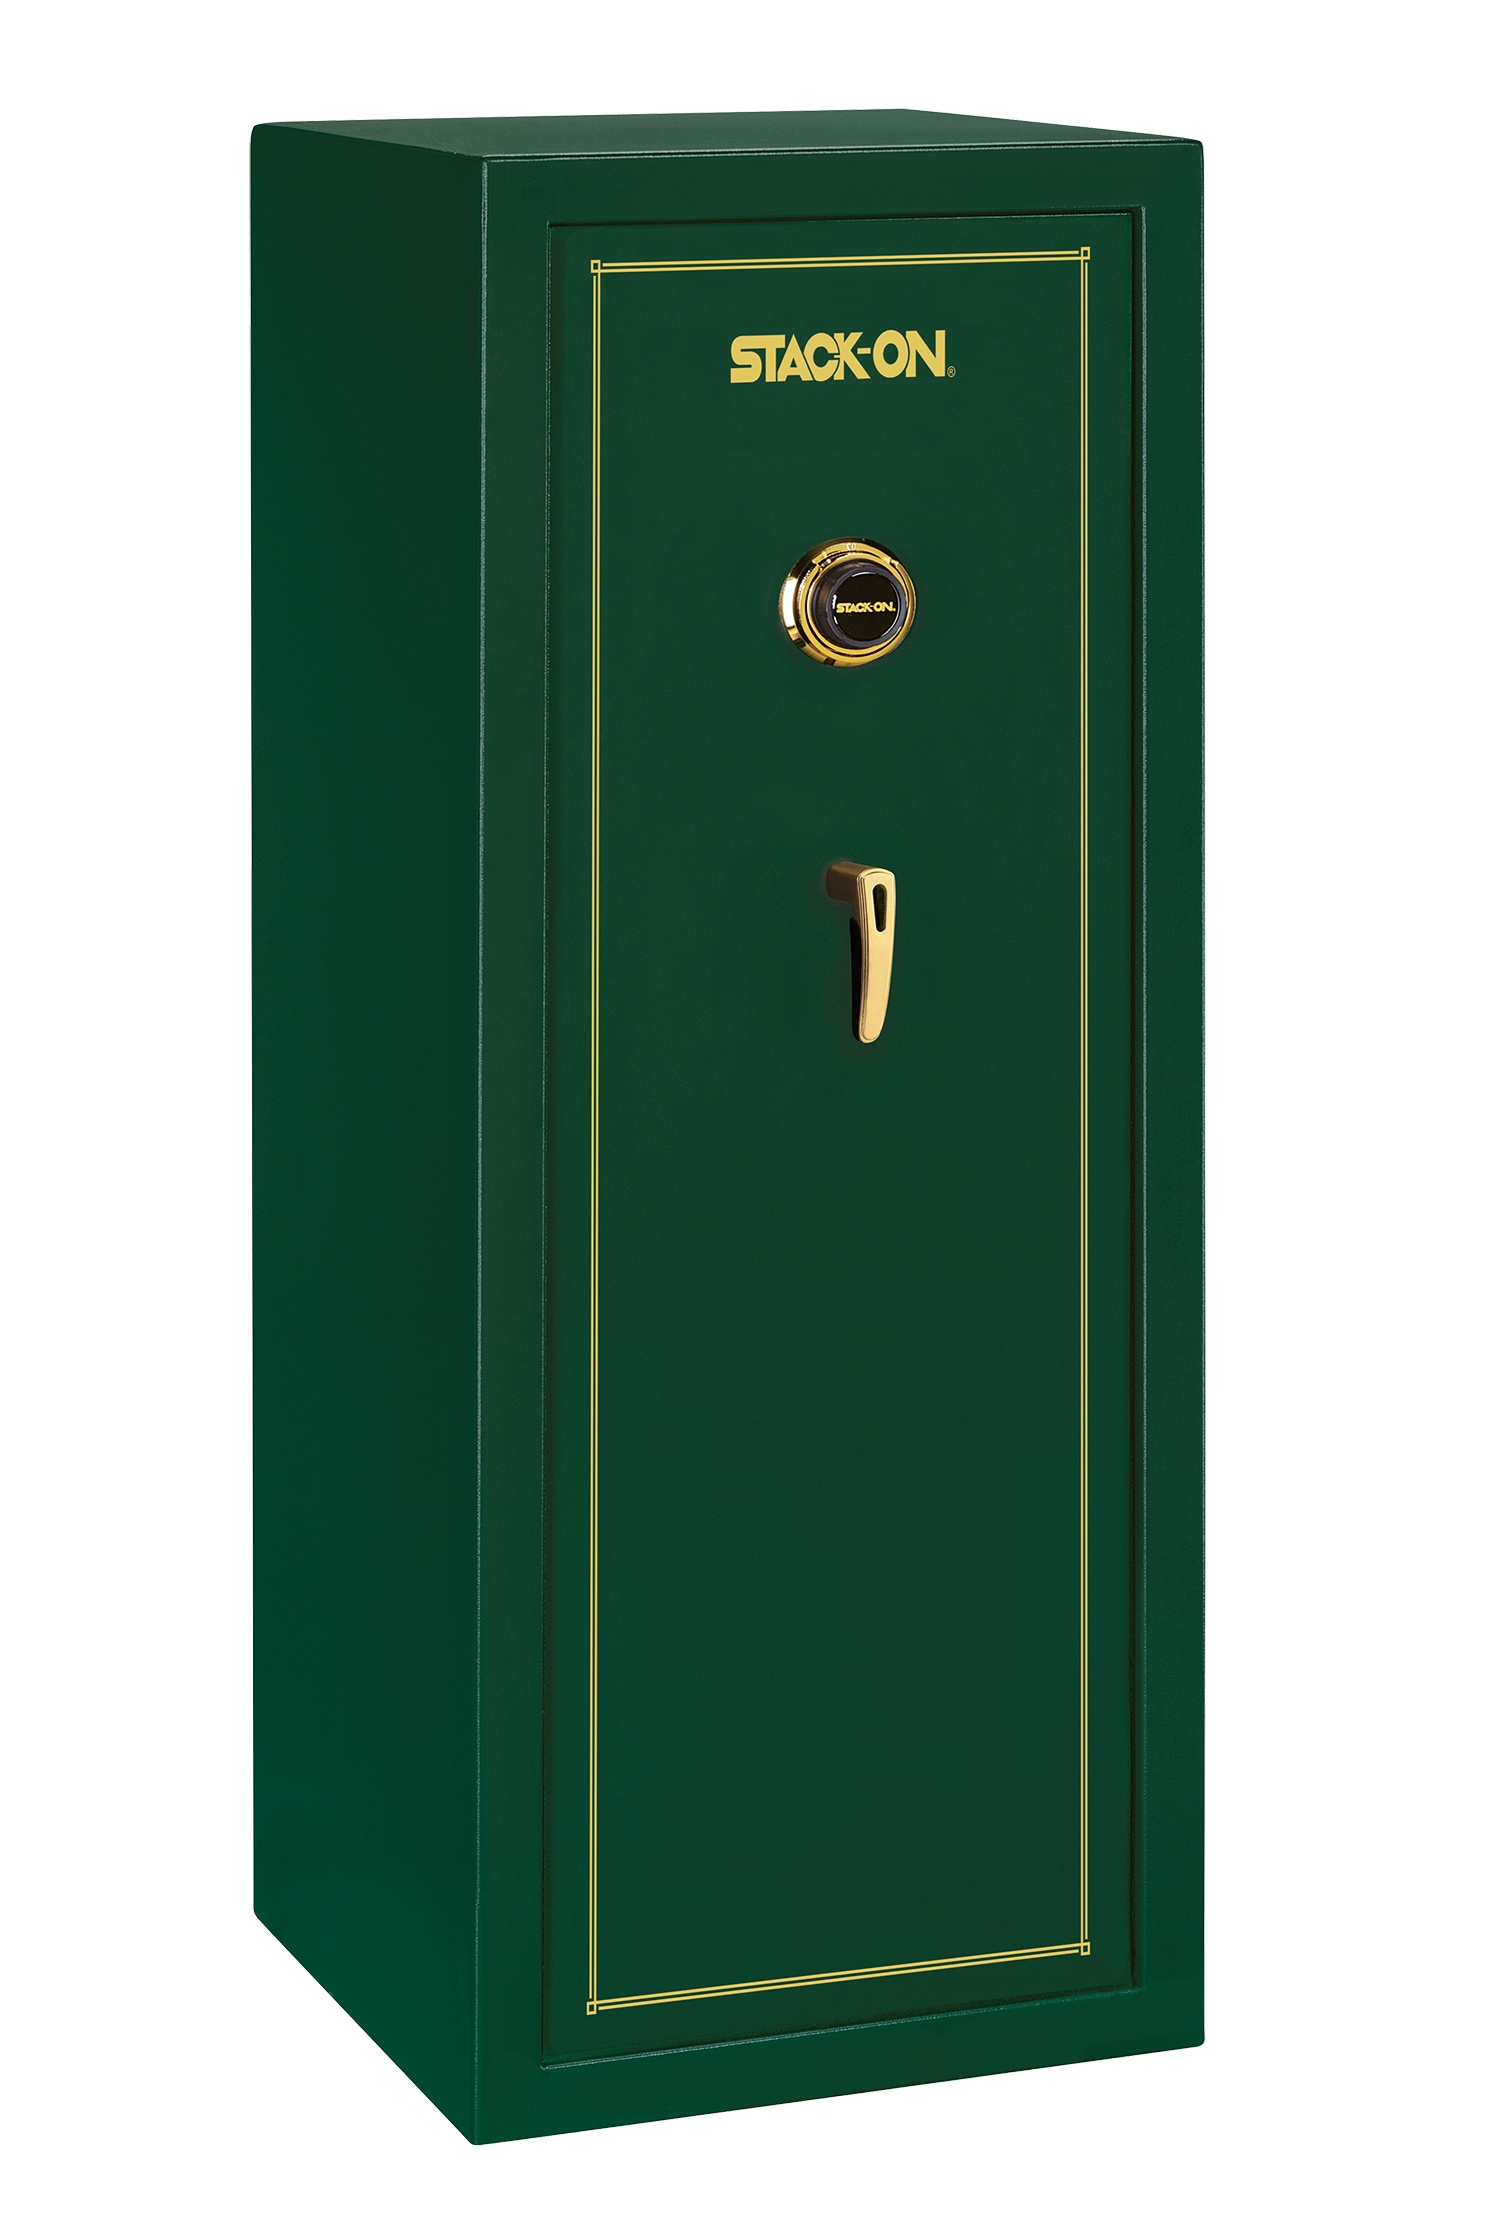 Stack-On SS-Series 16 Gun Safe w/ Combination Lock Hunter Green - SS-16-MG-C